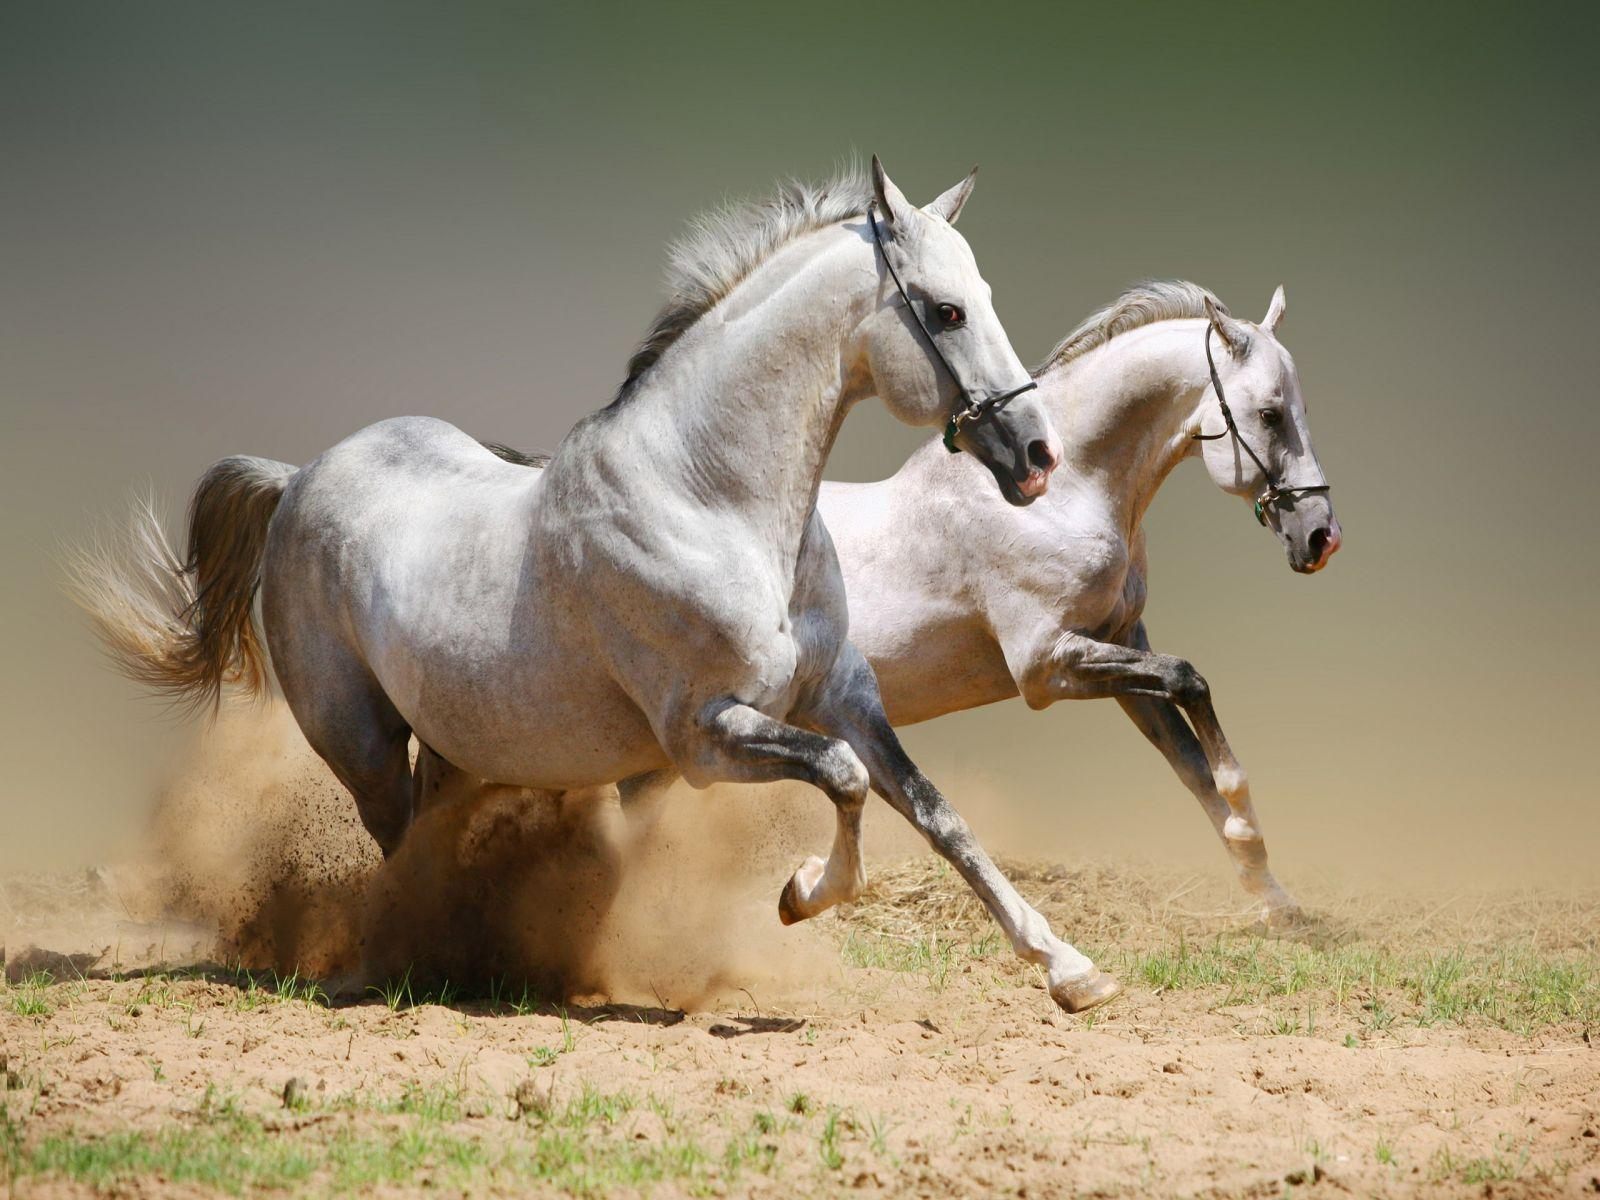 horse wallpapers for laptop - photo #6